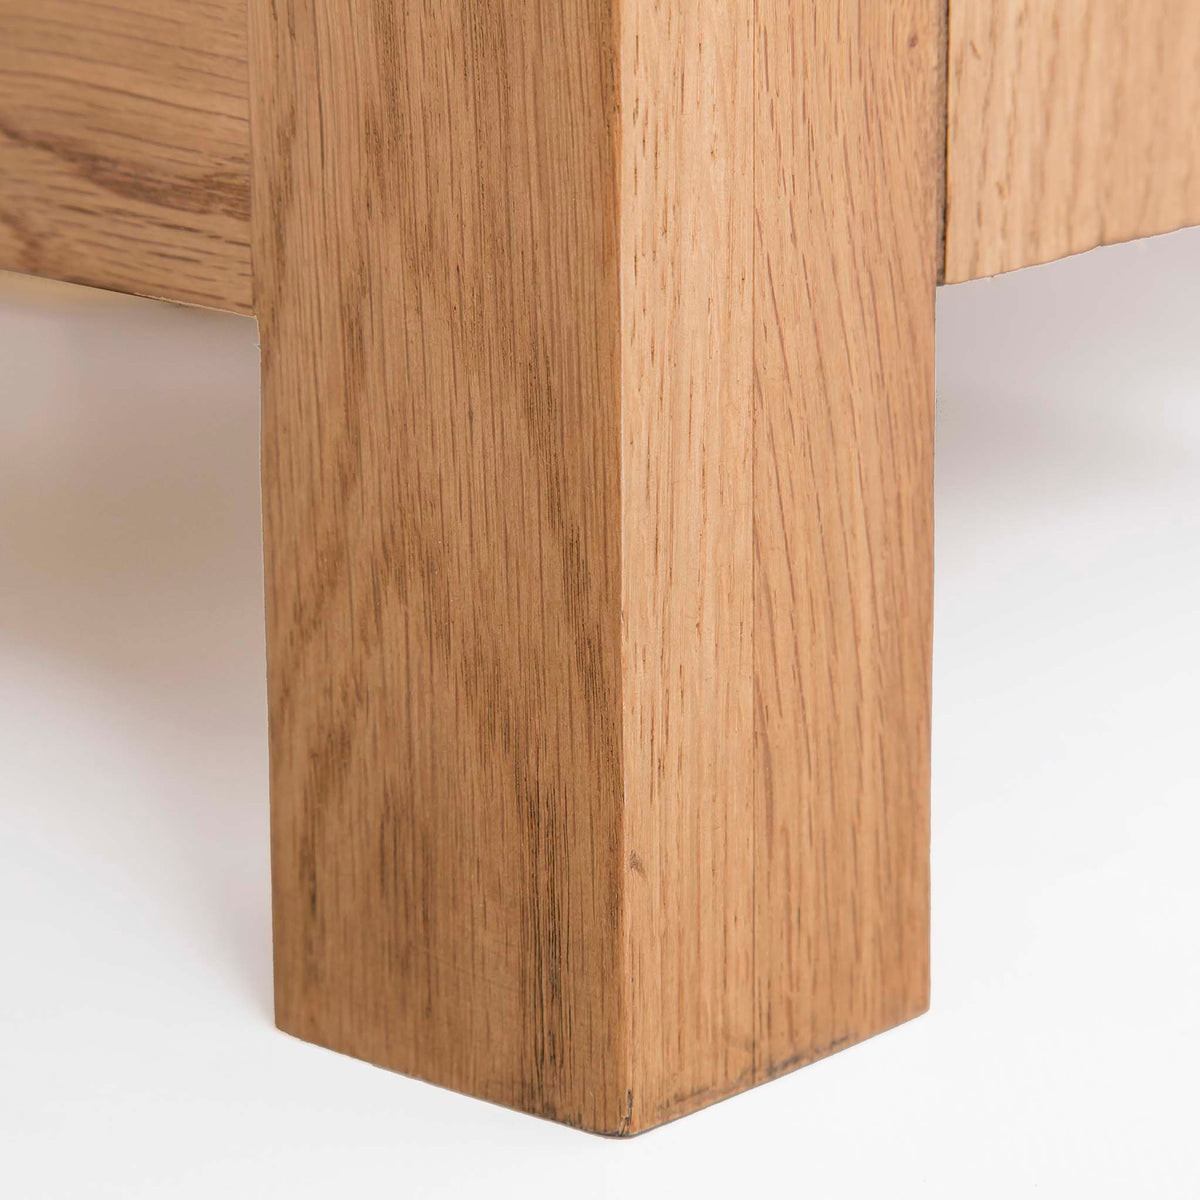 Surrey Oak Large Sideboard - Close up of foot of sideboard